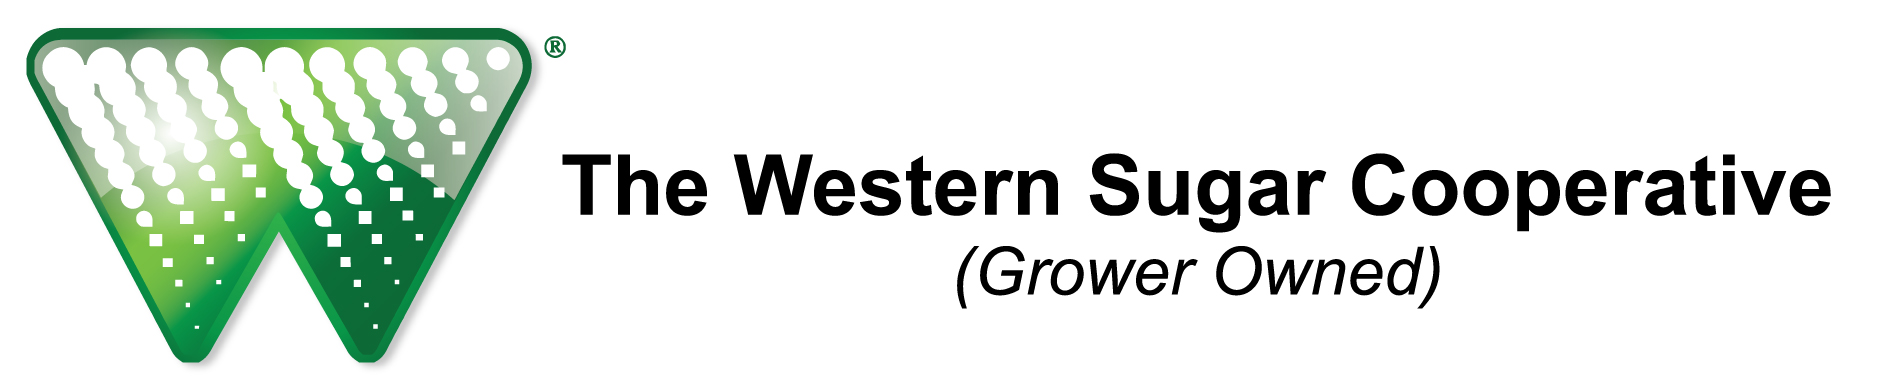 Western Increases Assessment for Growers Who Don't Plant Crop | Sugar Producer Magazine